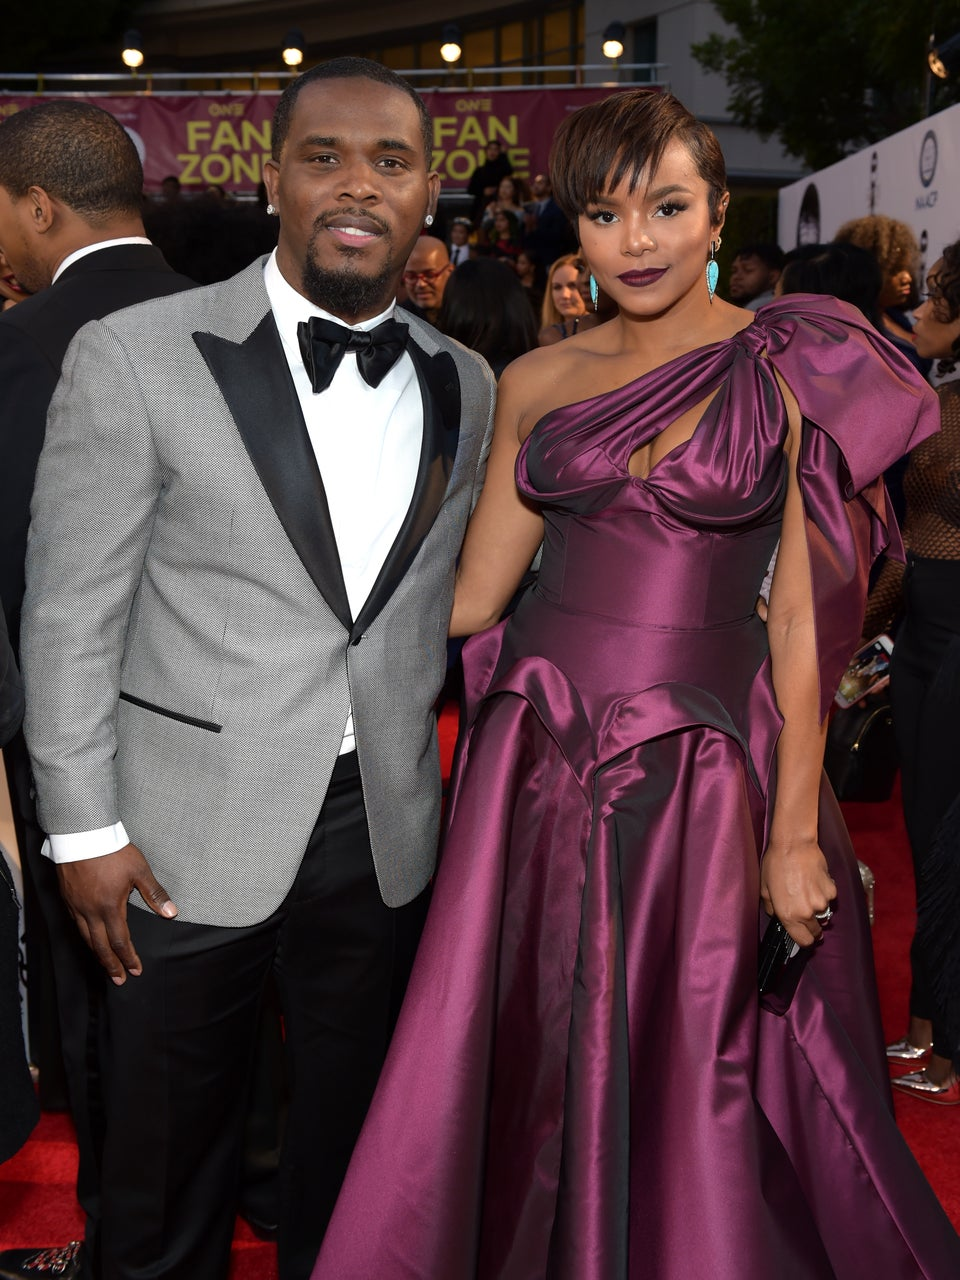 LeToya Luckett And Her New Husband Make First Red Carpet Appearance As Newlyweds at the NAACP Image Awards